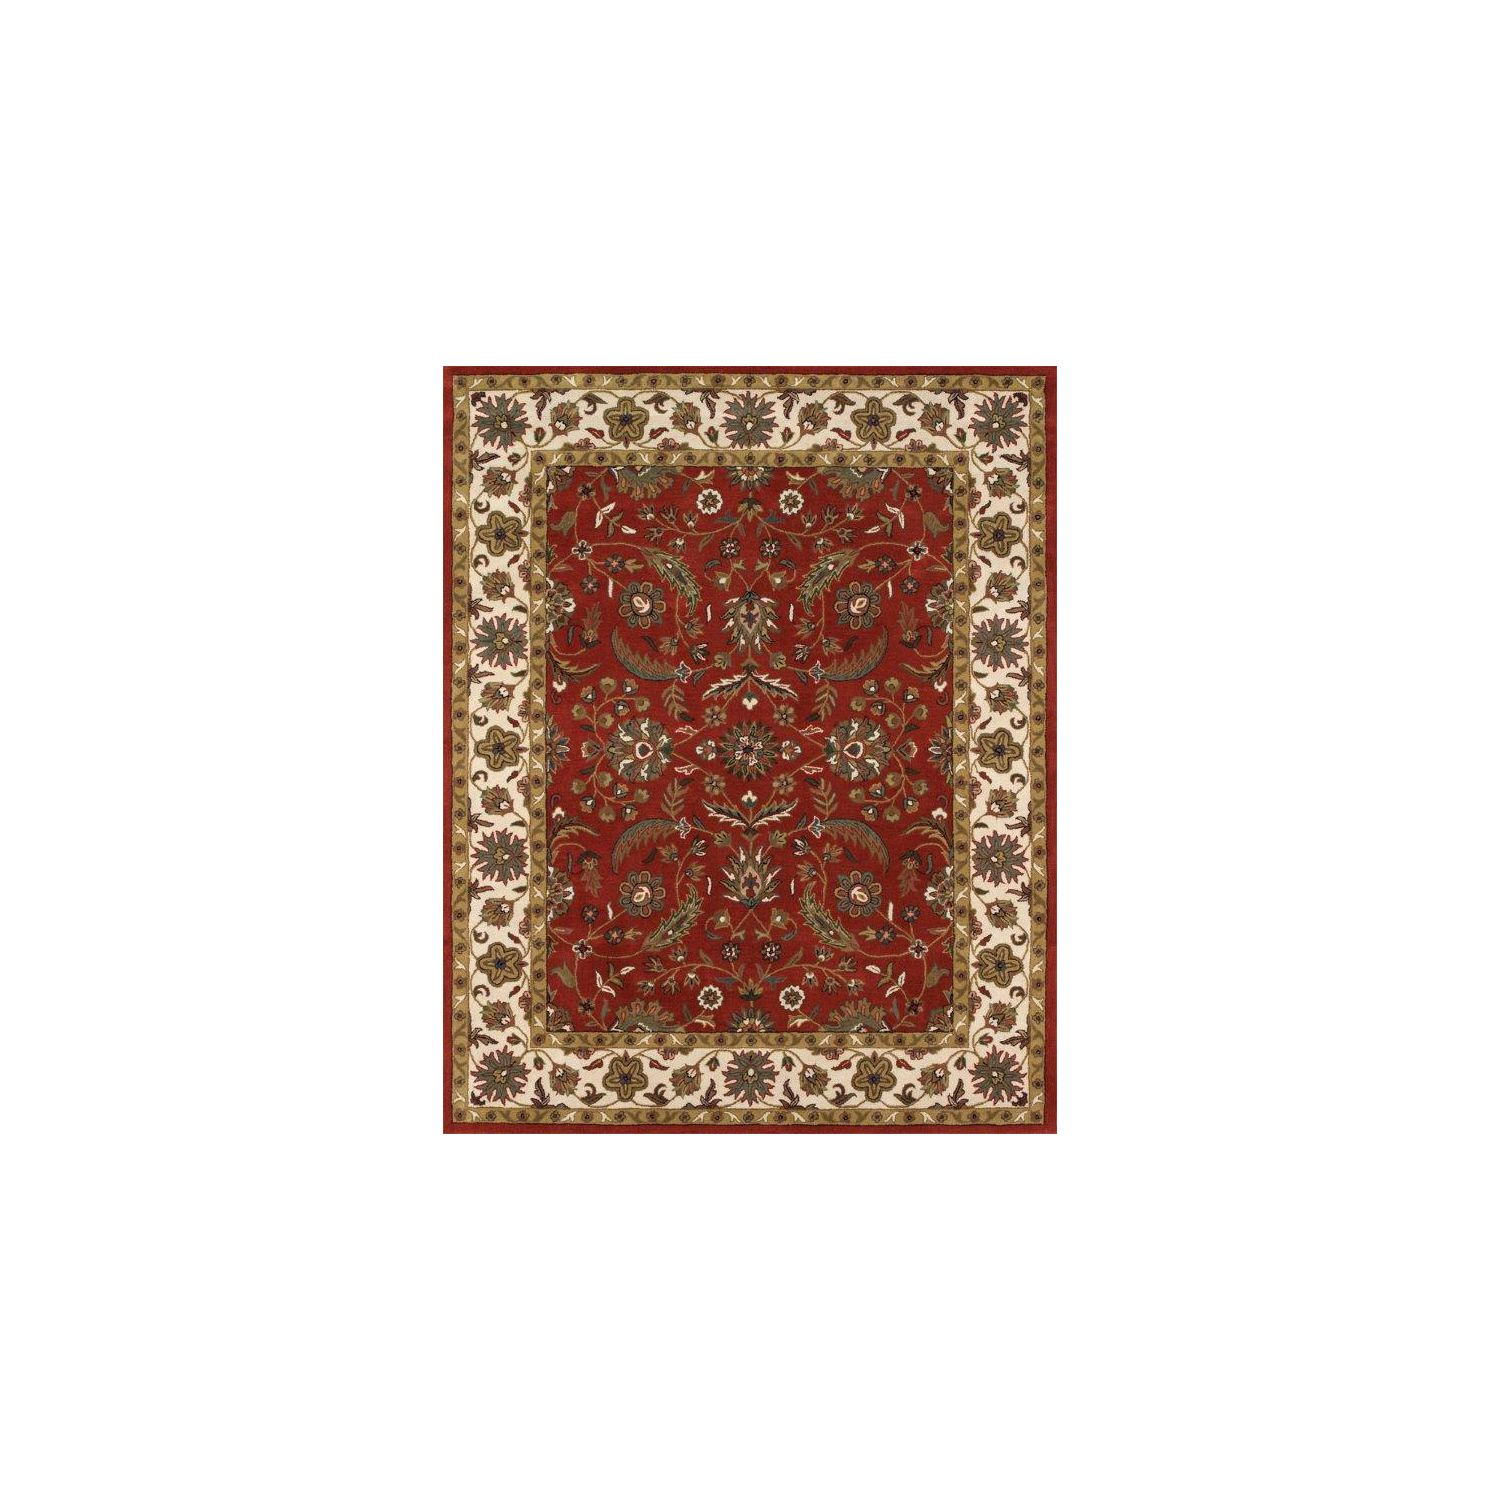 New Brand Devlin Persian Rug Handmade 100 Wool Area Rugs: Thomasville Special Additions 100% Wool Rug